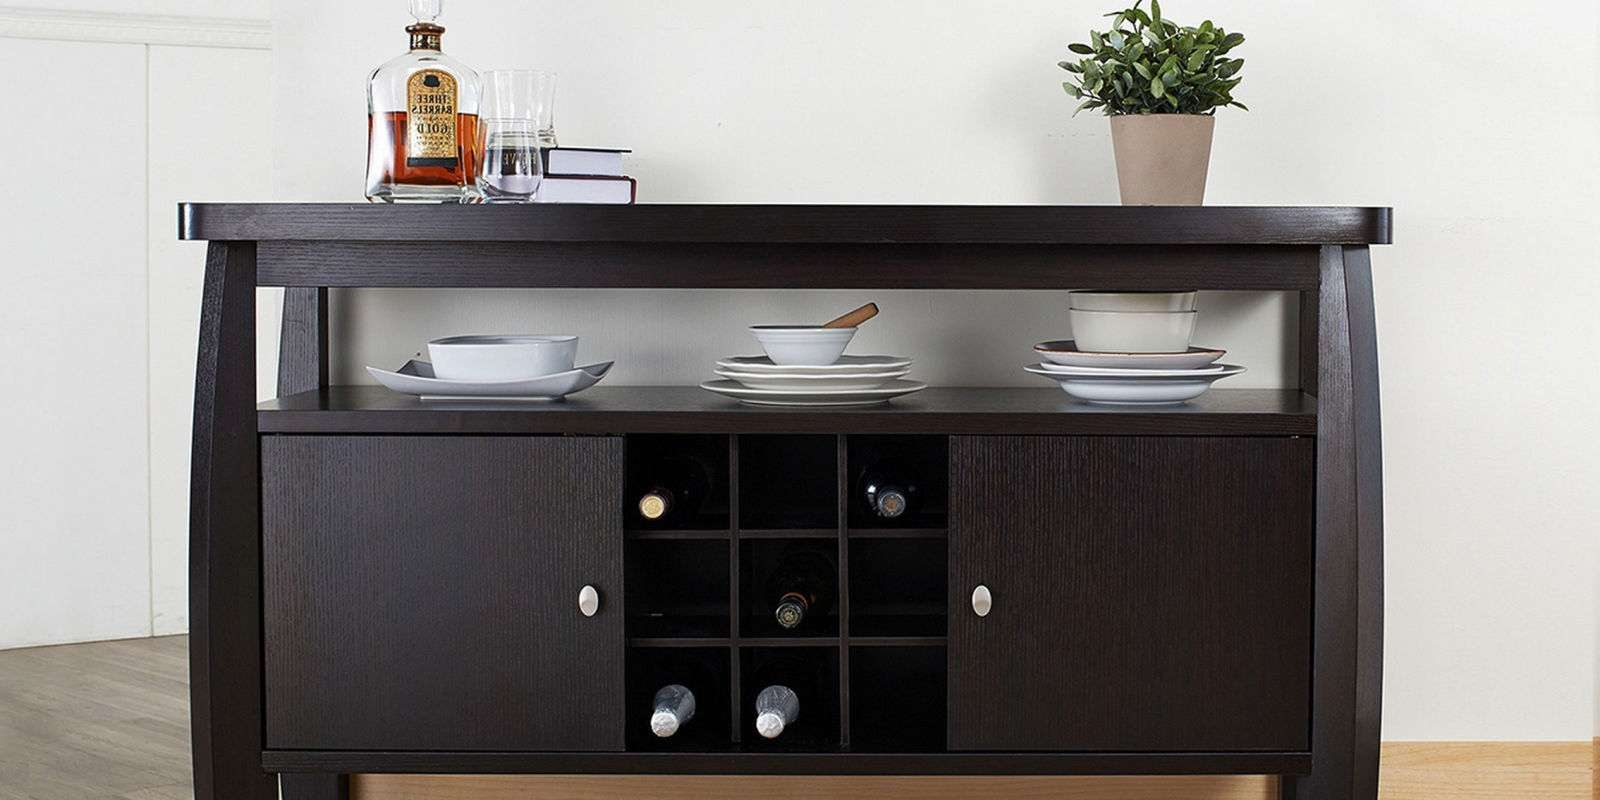 11 Best Sideboards And Buffets In 2018 – Reviews Of Sideboards For Dining Room With Sideboards (Gallery 17 of 20)